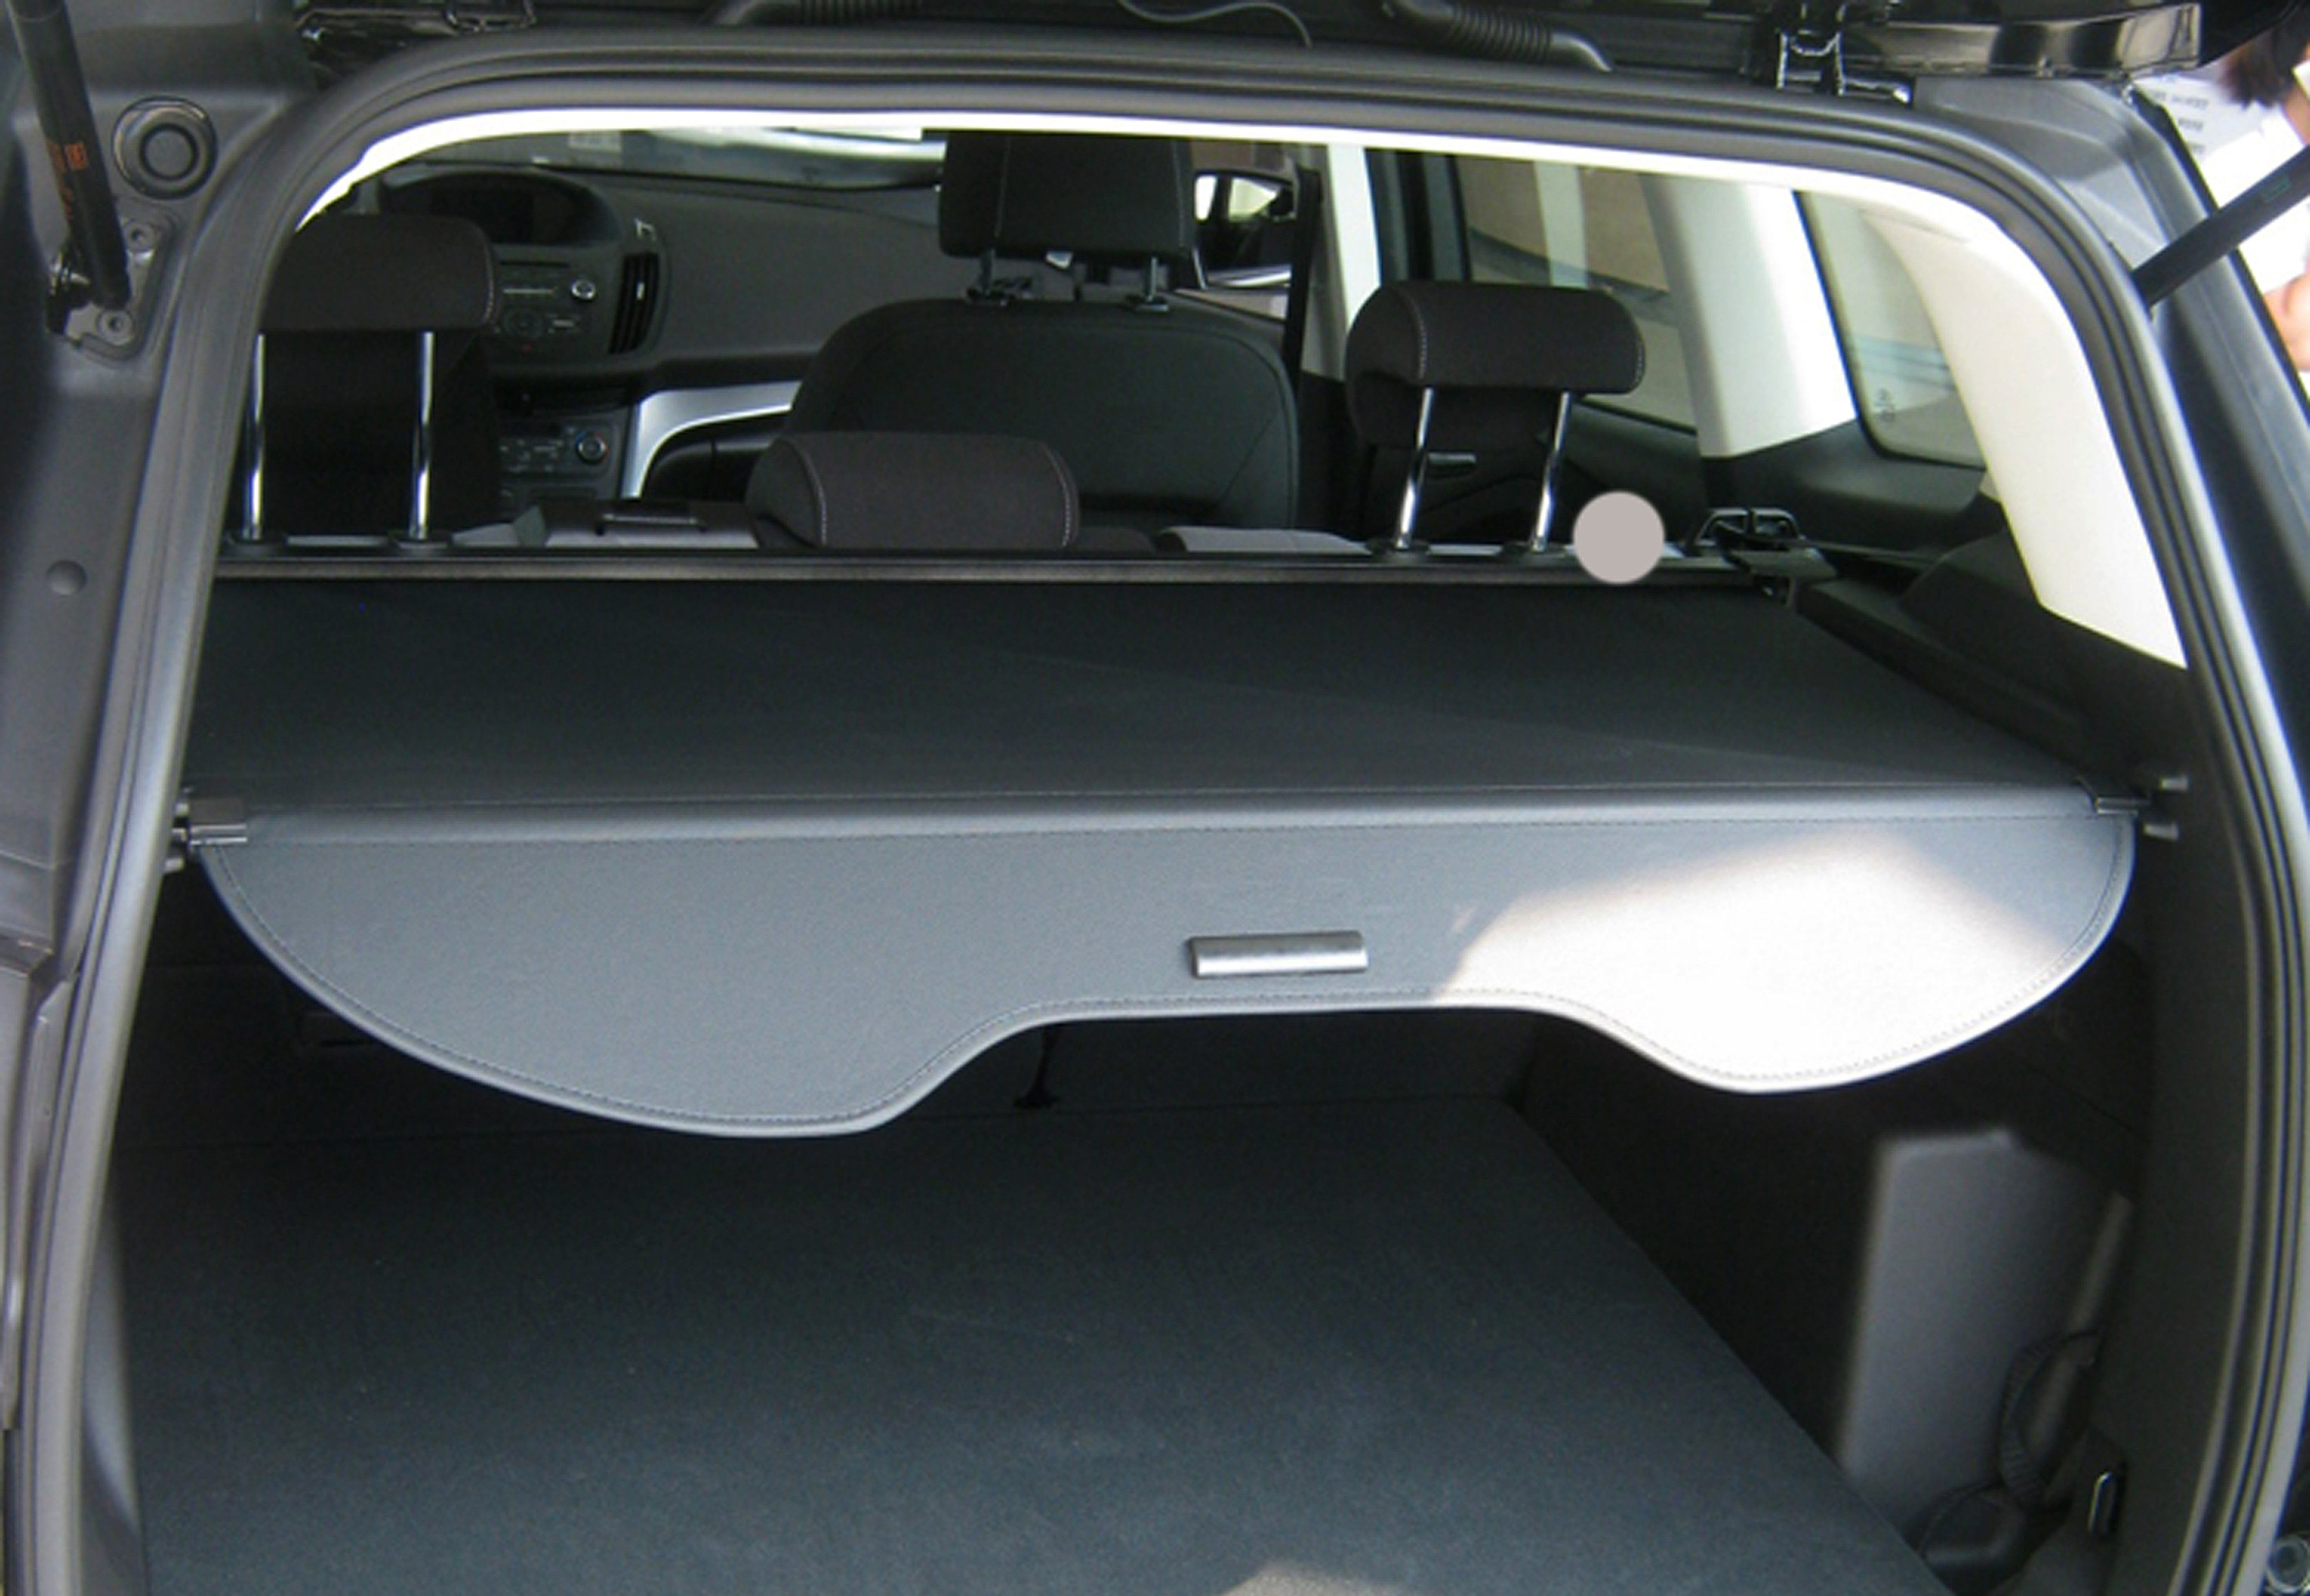 Ford KUGA Cargo Cover